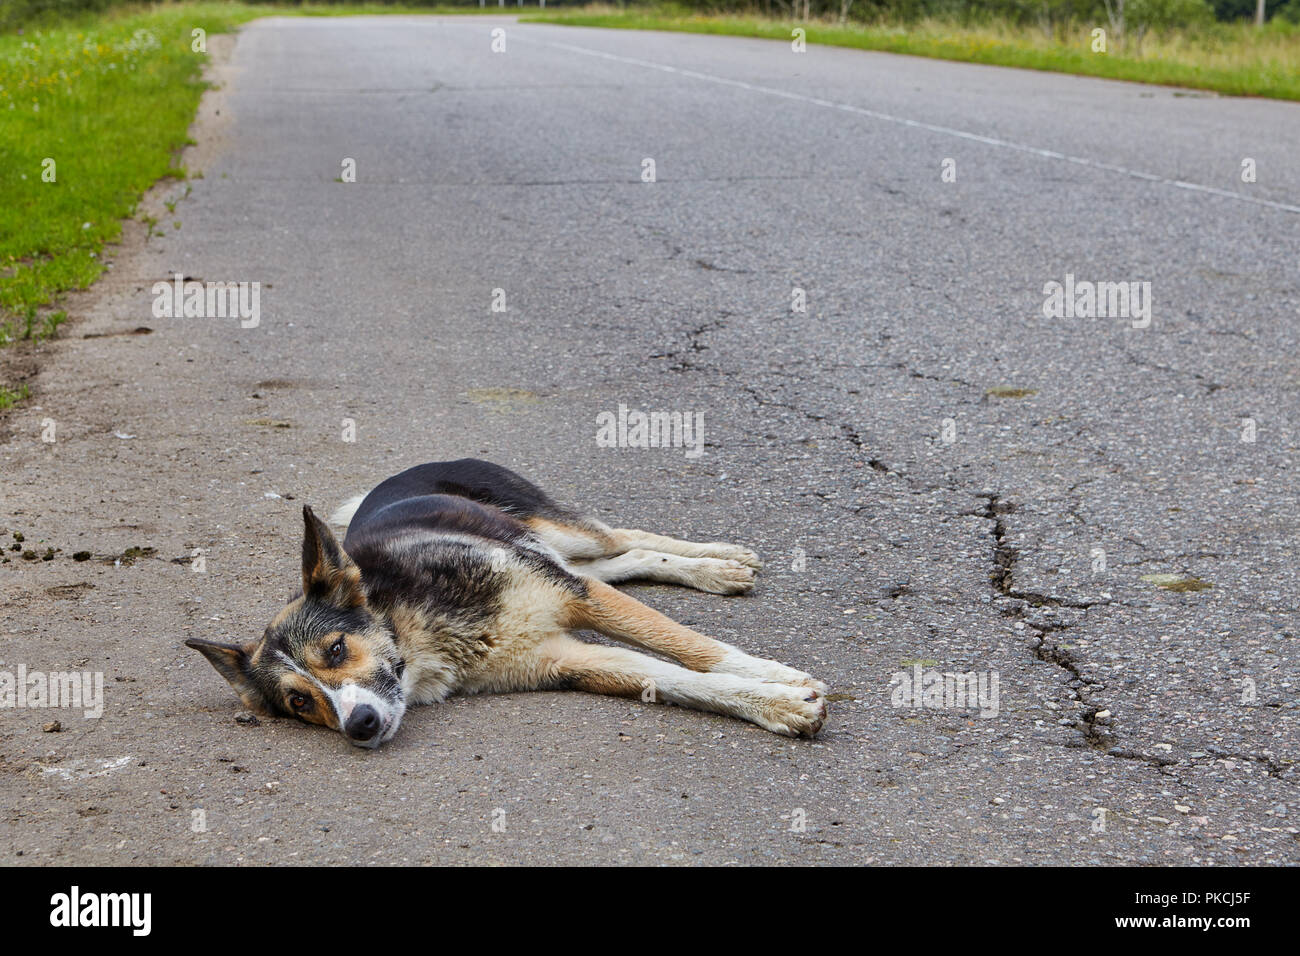 A non-pedigree dog rests on the roadway of an asphalt road in the countryside. - Stock Image